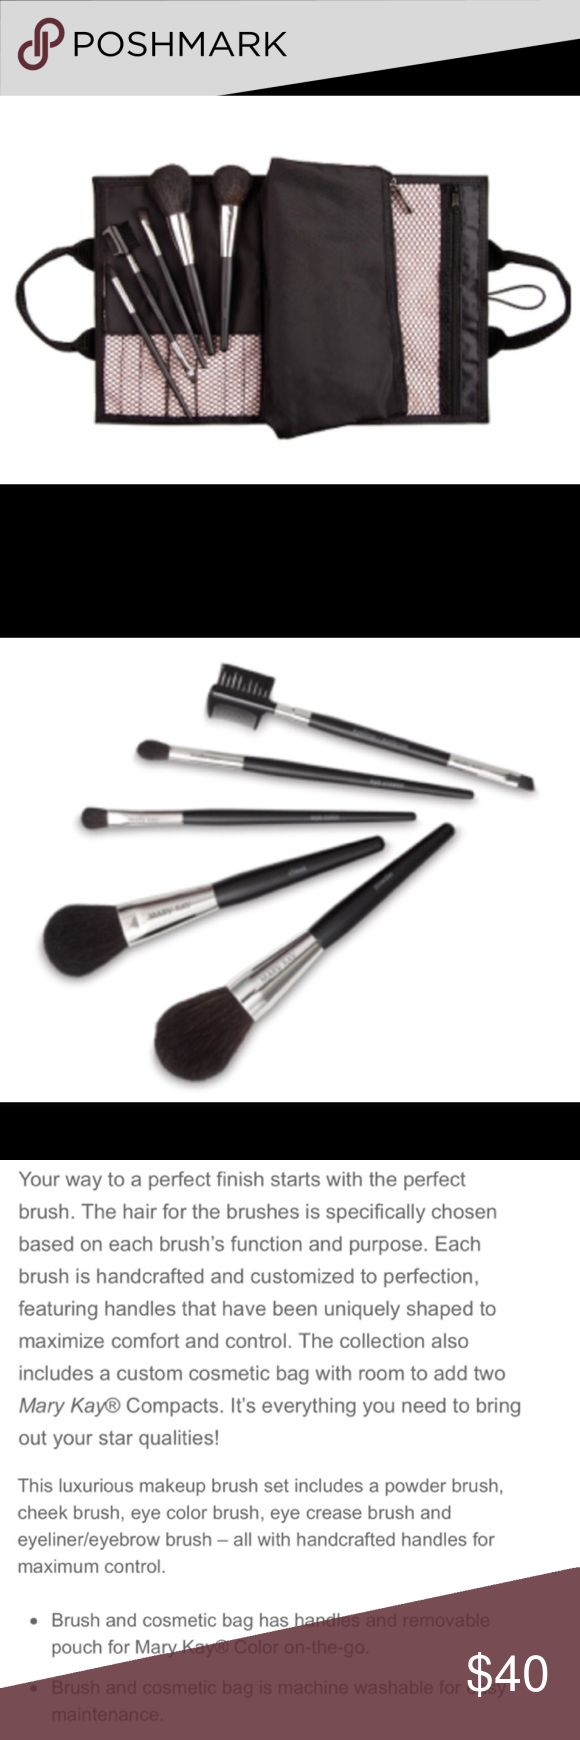 Mary Kay Brush Collection with bag NWOT or original packaging. Never used. Complete brush set with bag. Five brushes included are: powder brush, cheek brush, eye defined brush, eye crease brush and dual ended eye liner/ eye brow brush. Bag fits all brushes including ones that are sold separately. Has multiple zippered compartments and pockets. See pics for additional product details. Retails for $55. Please look at my other Mary Kay listings- I'm usually the lowest on Poshmark! Mary Kay…